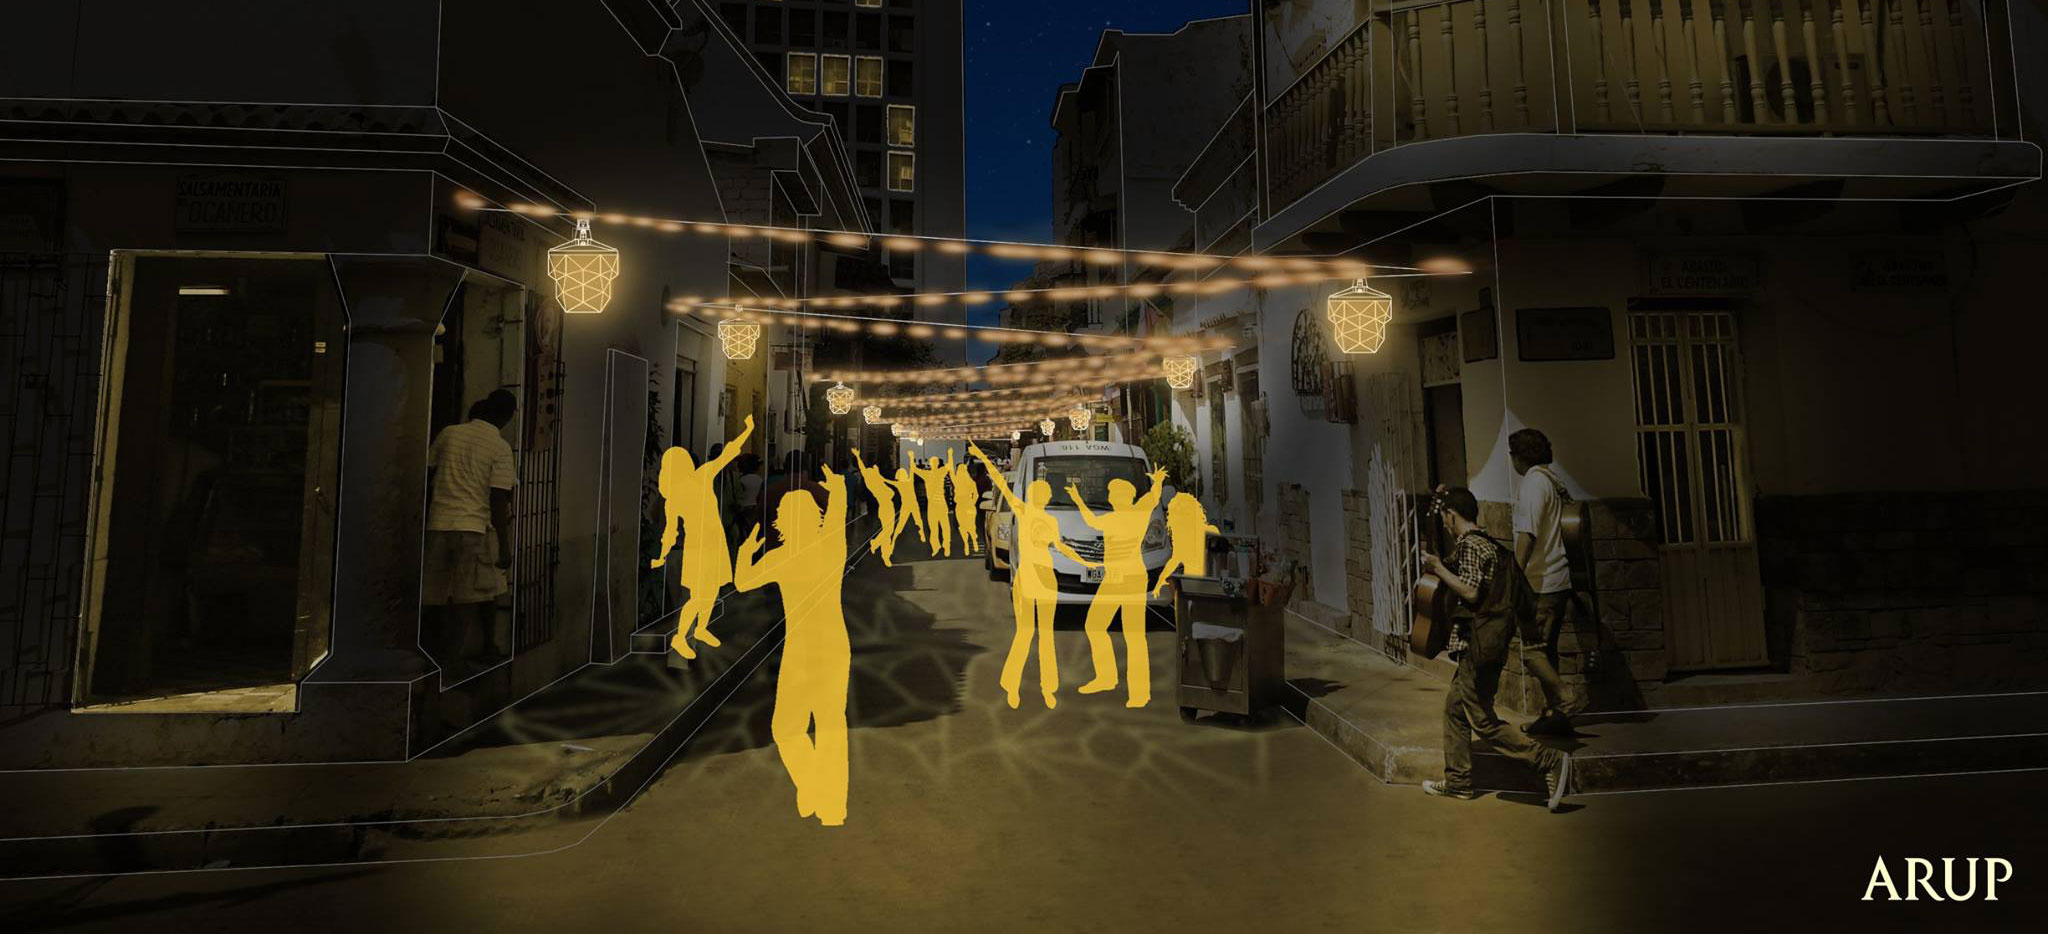 Getsemani residents contribute to the design of modern led lanterns that exhalt the identity of their neighborhood.